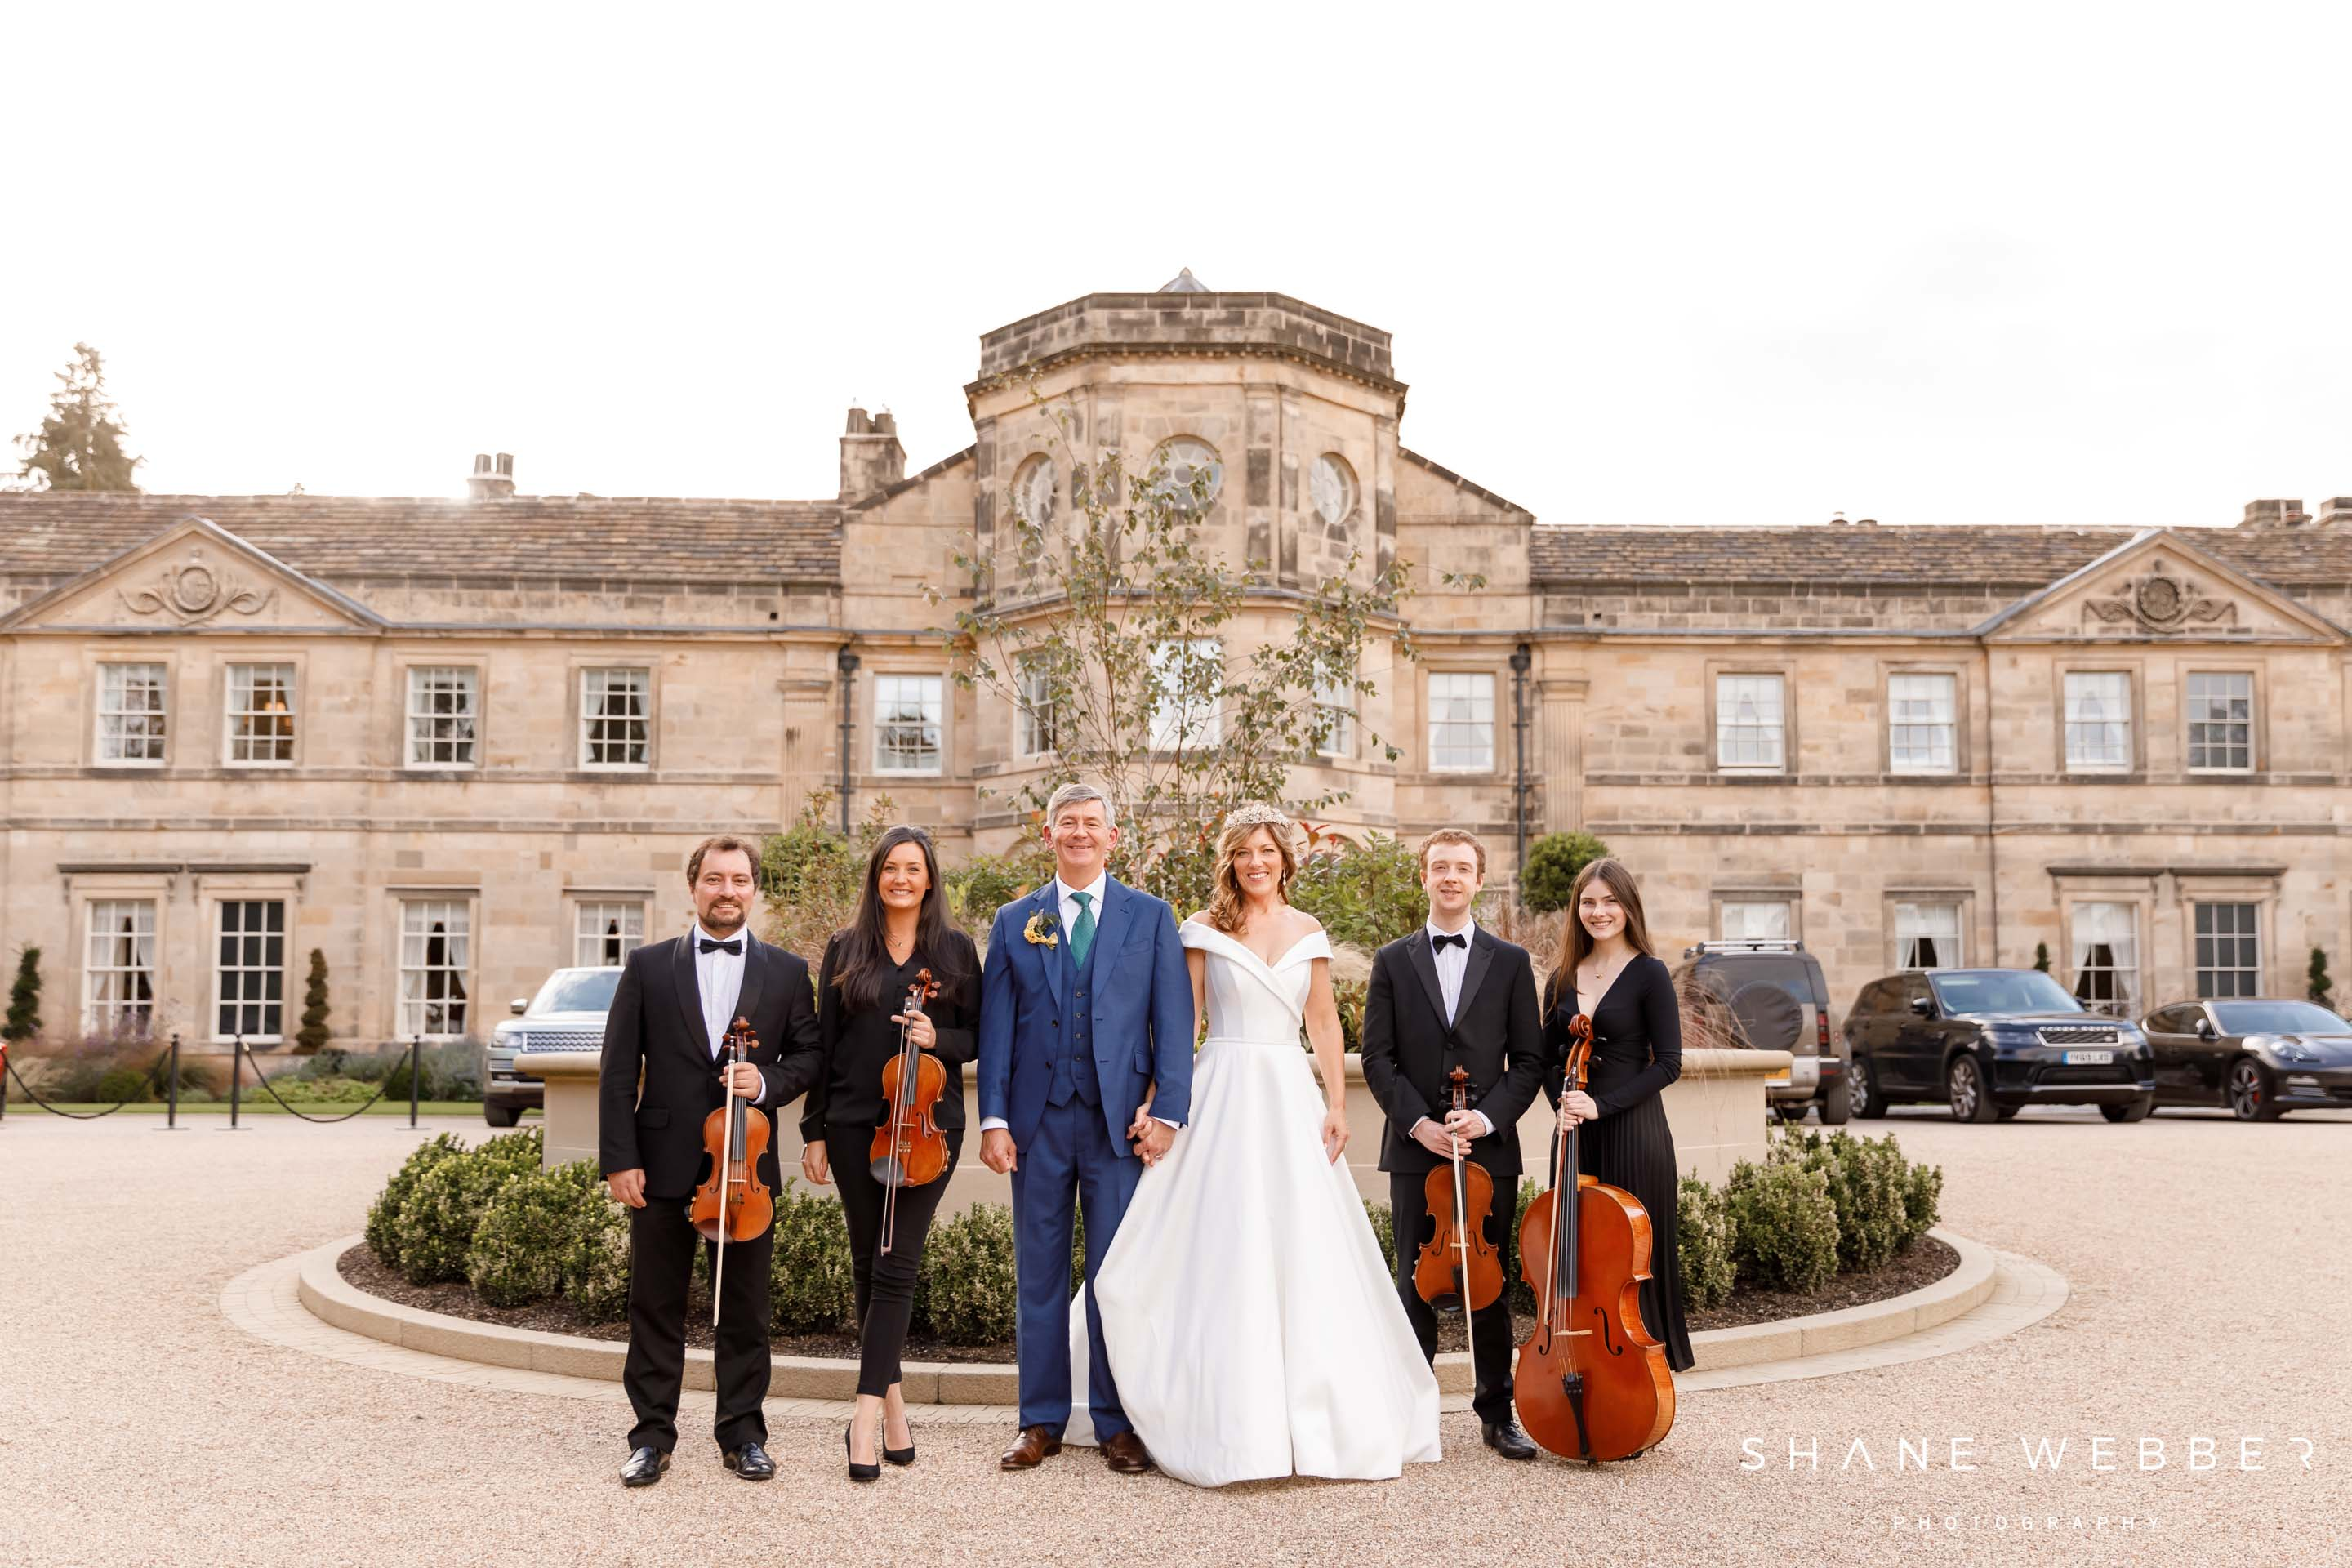 Northern string quartet outside Grantley Hall wedding